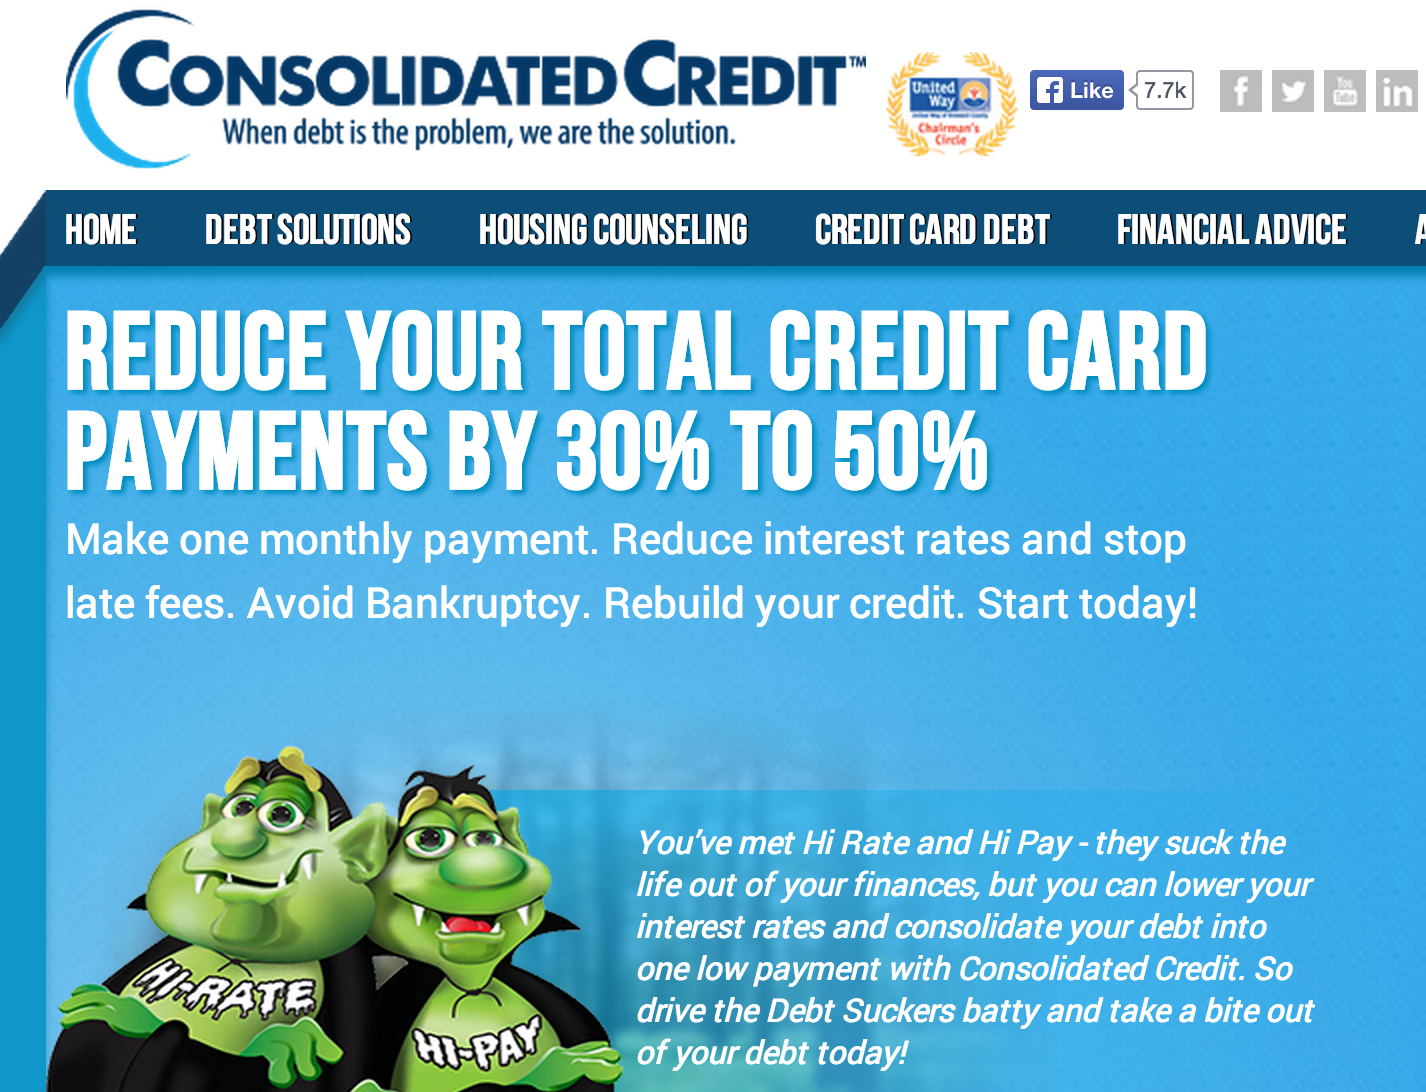 Founder Of Consolidated Credit Counseling Services Reportedly Tied To Payday Lenders